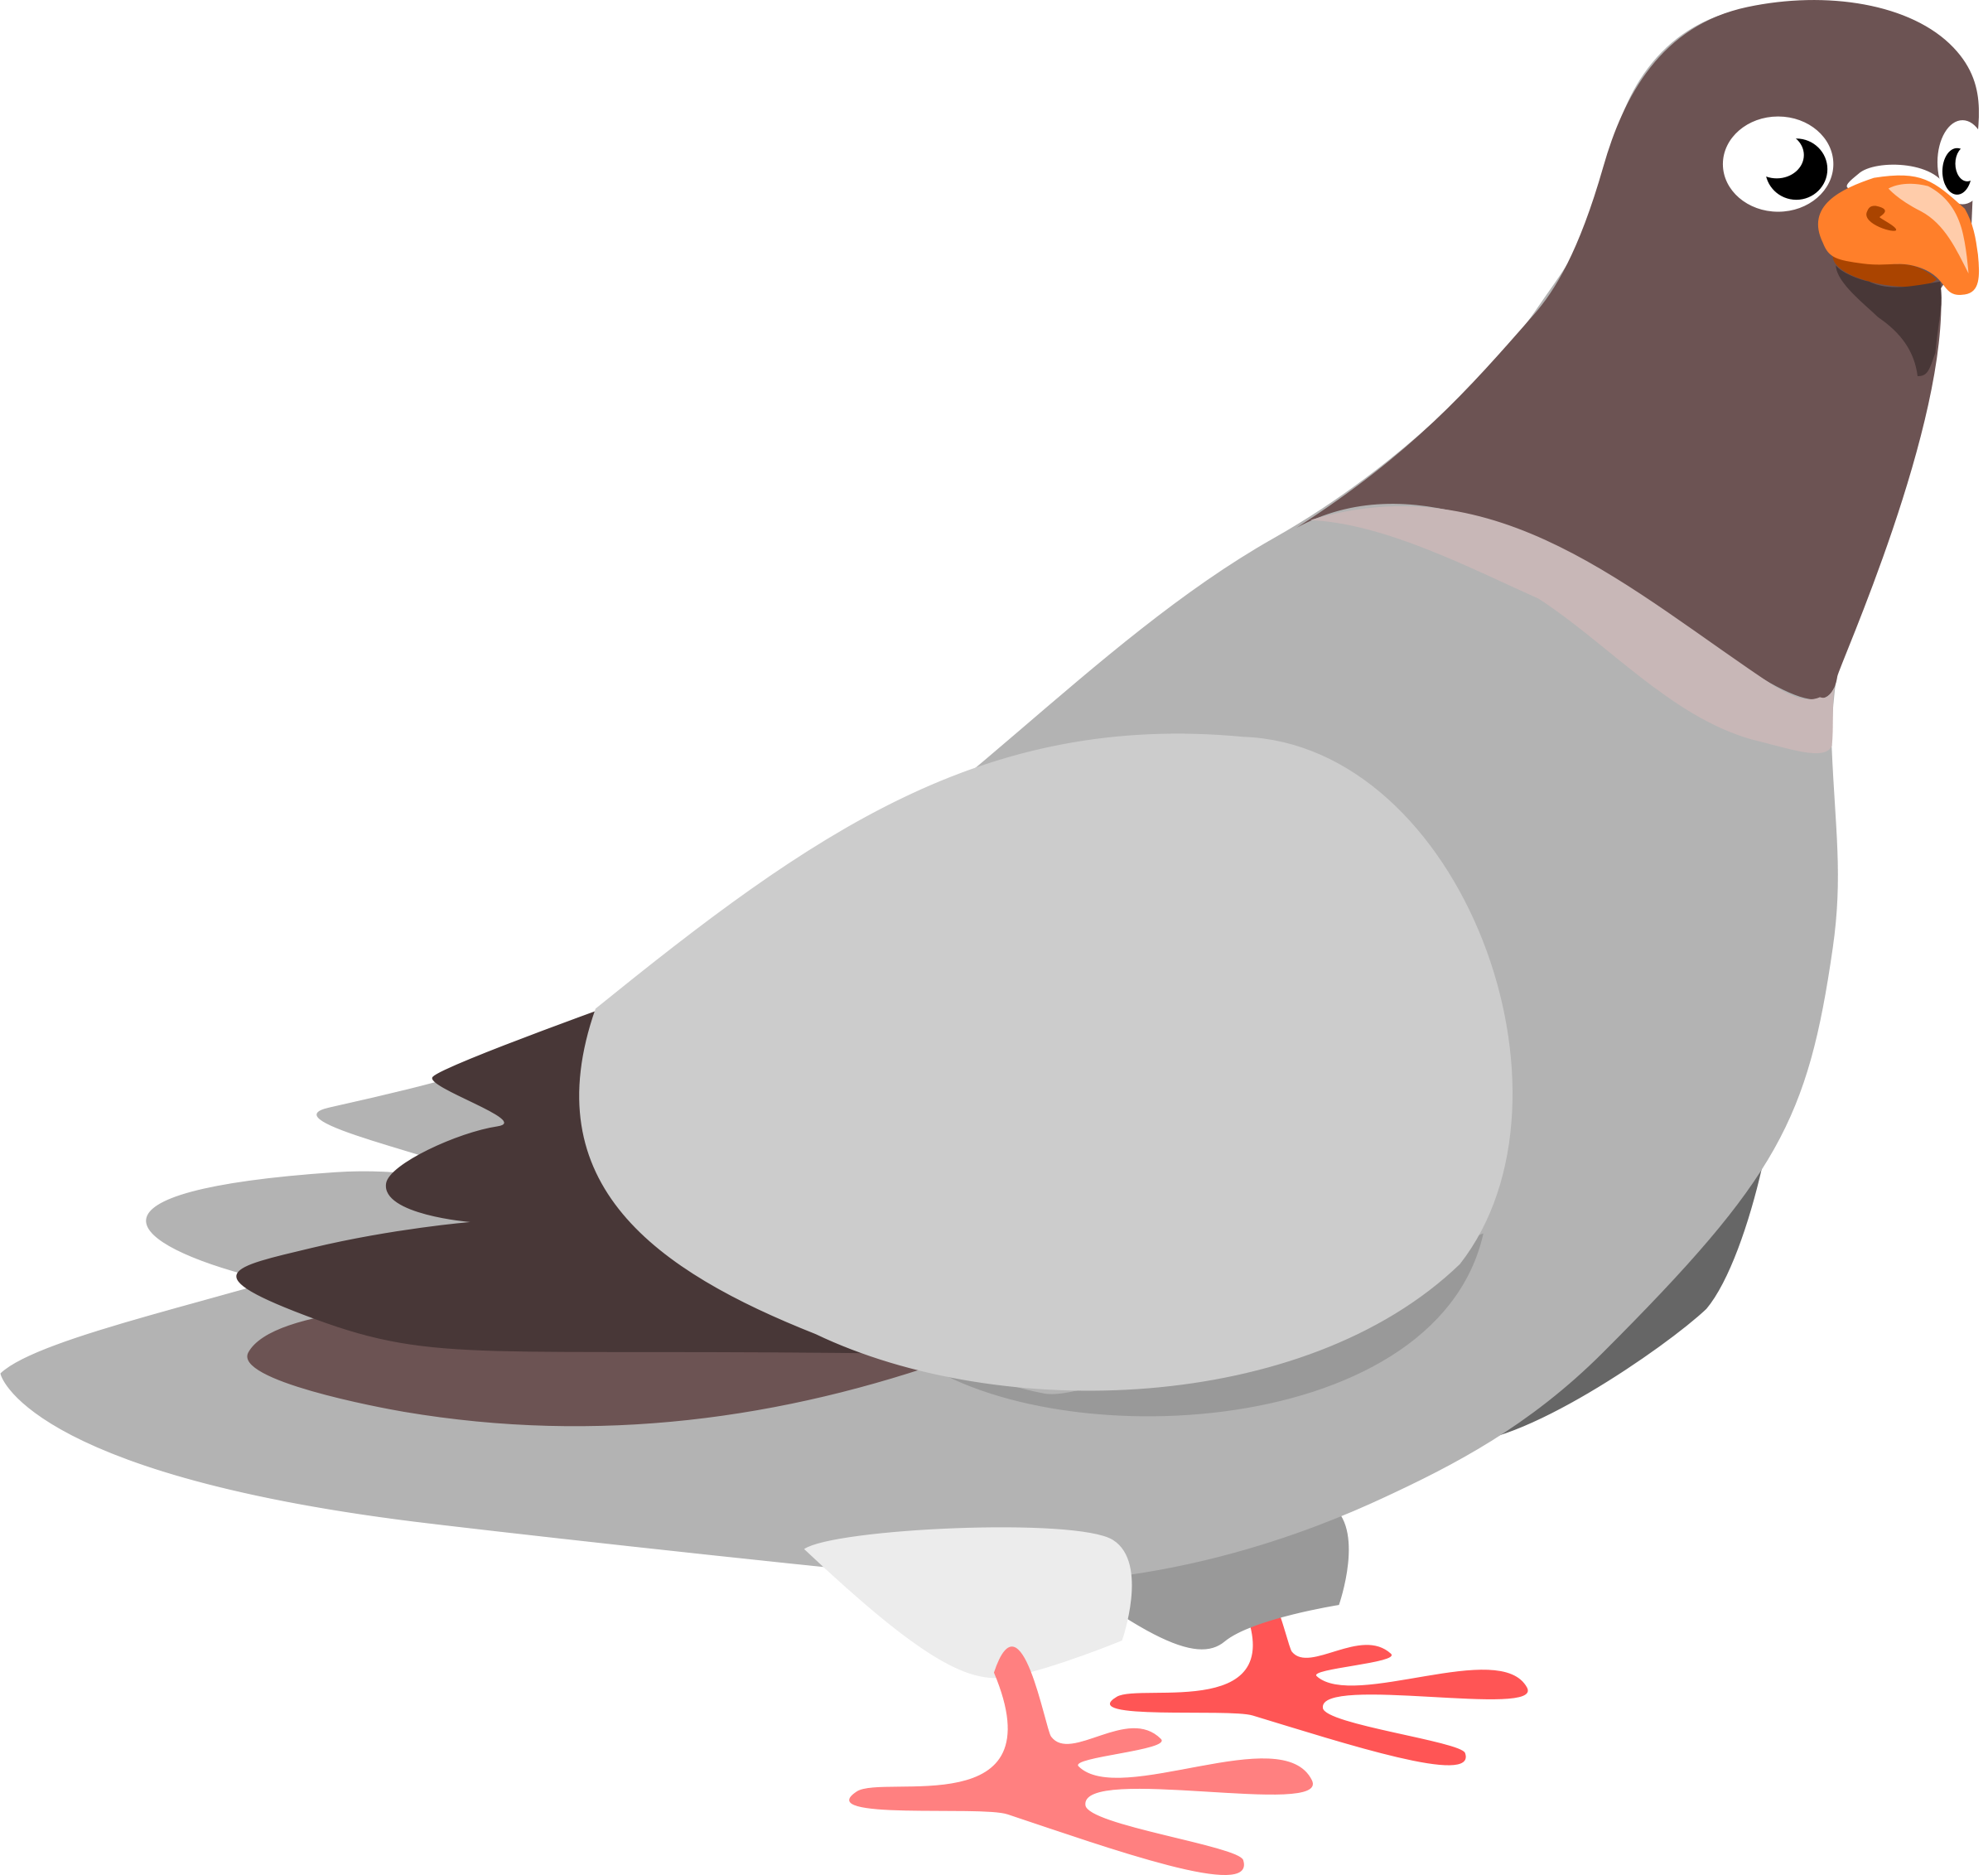 Free Pigeon Cliparts, Download Free Clip Art, Free Clip Art.